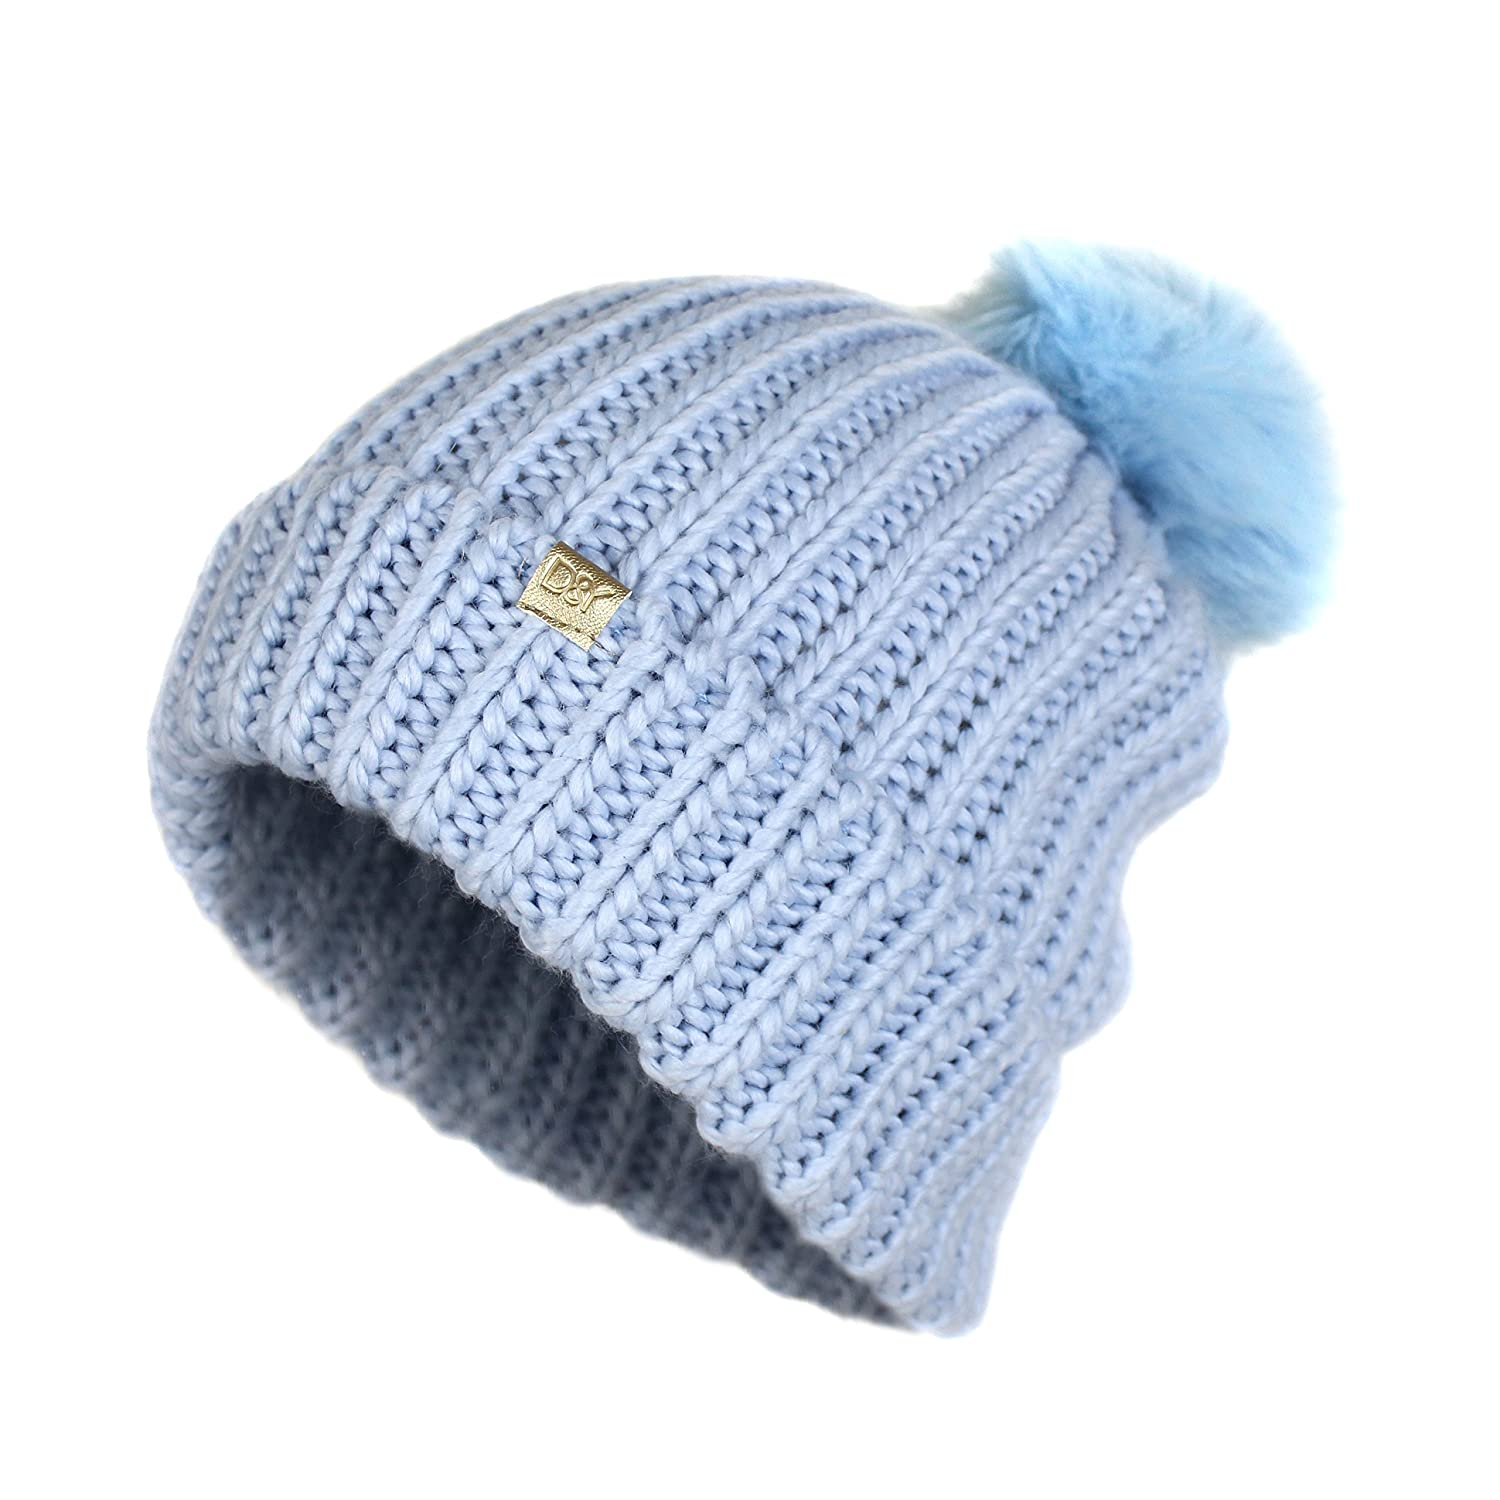 fca17529b David and Young Soft Stretch Chunky Cable Knit Beanie Hat With Pom ...